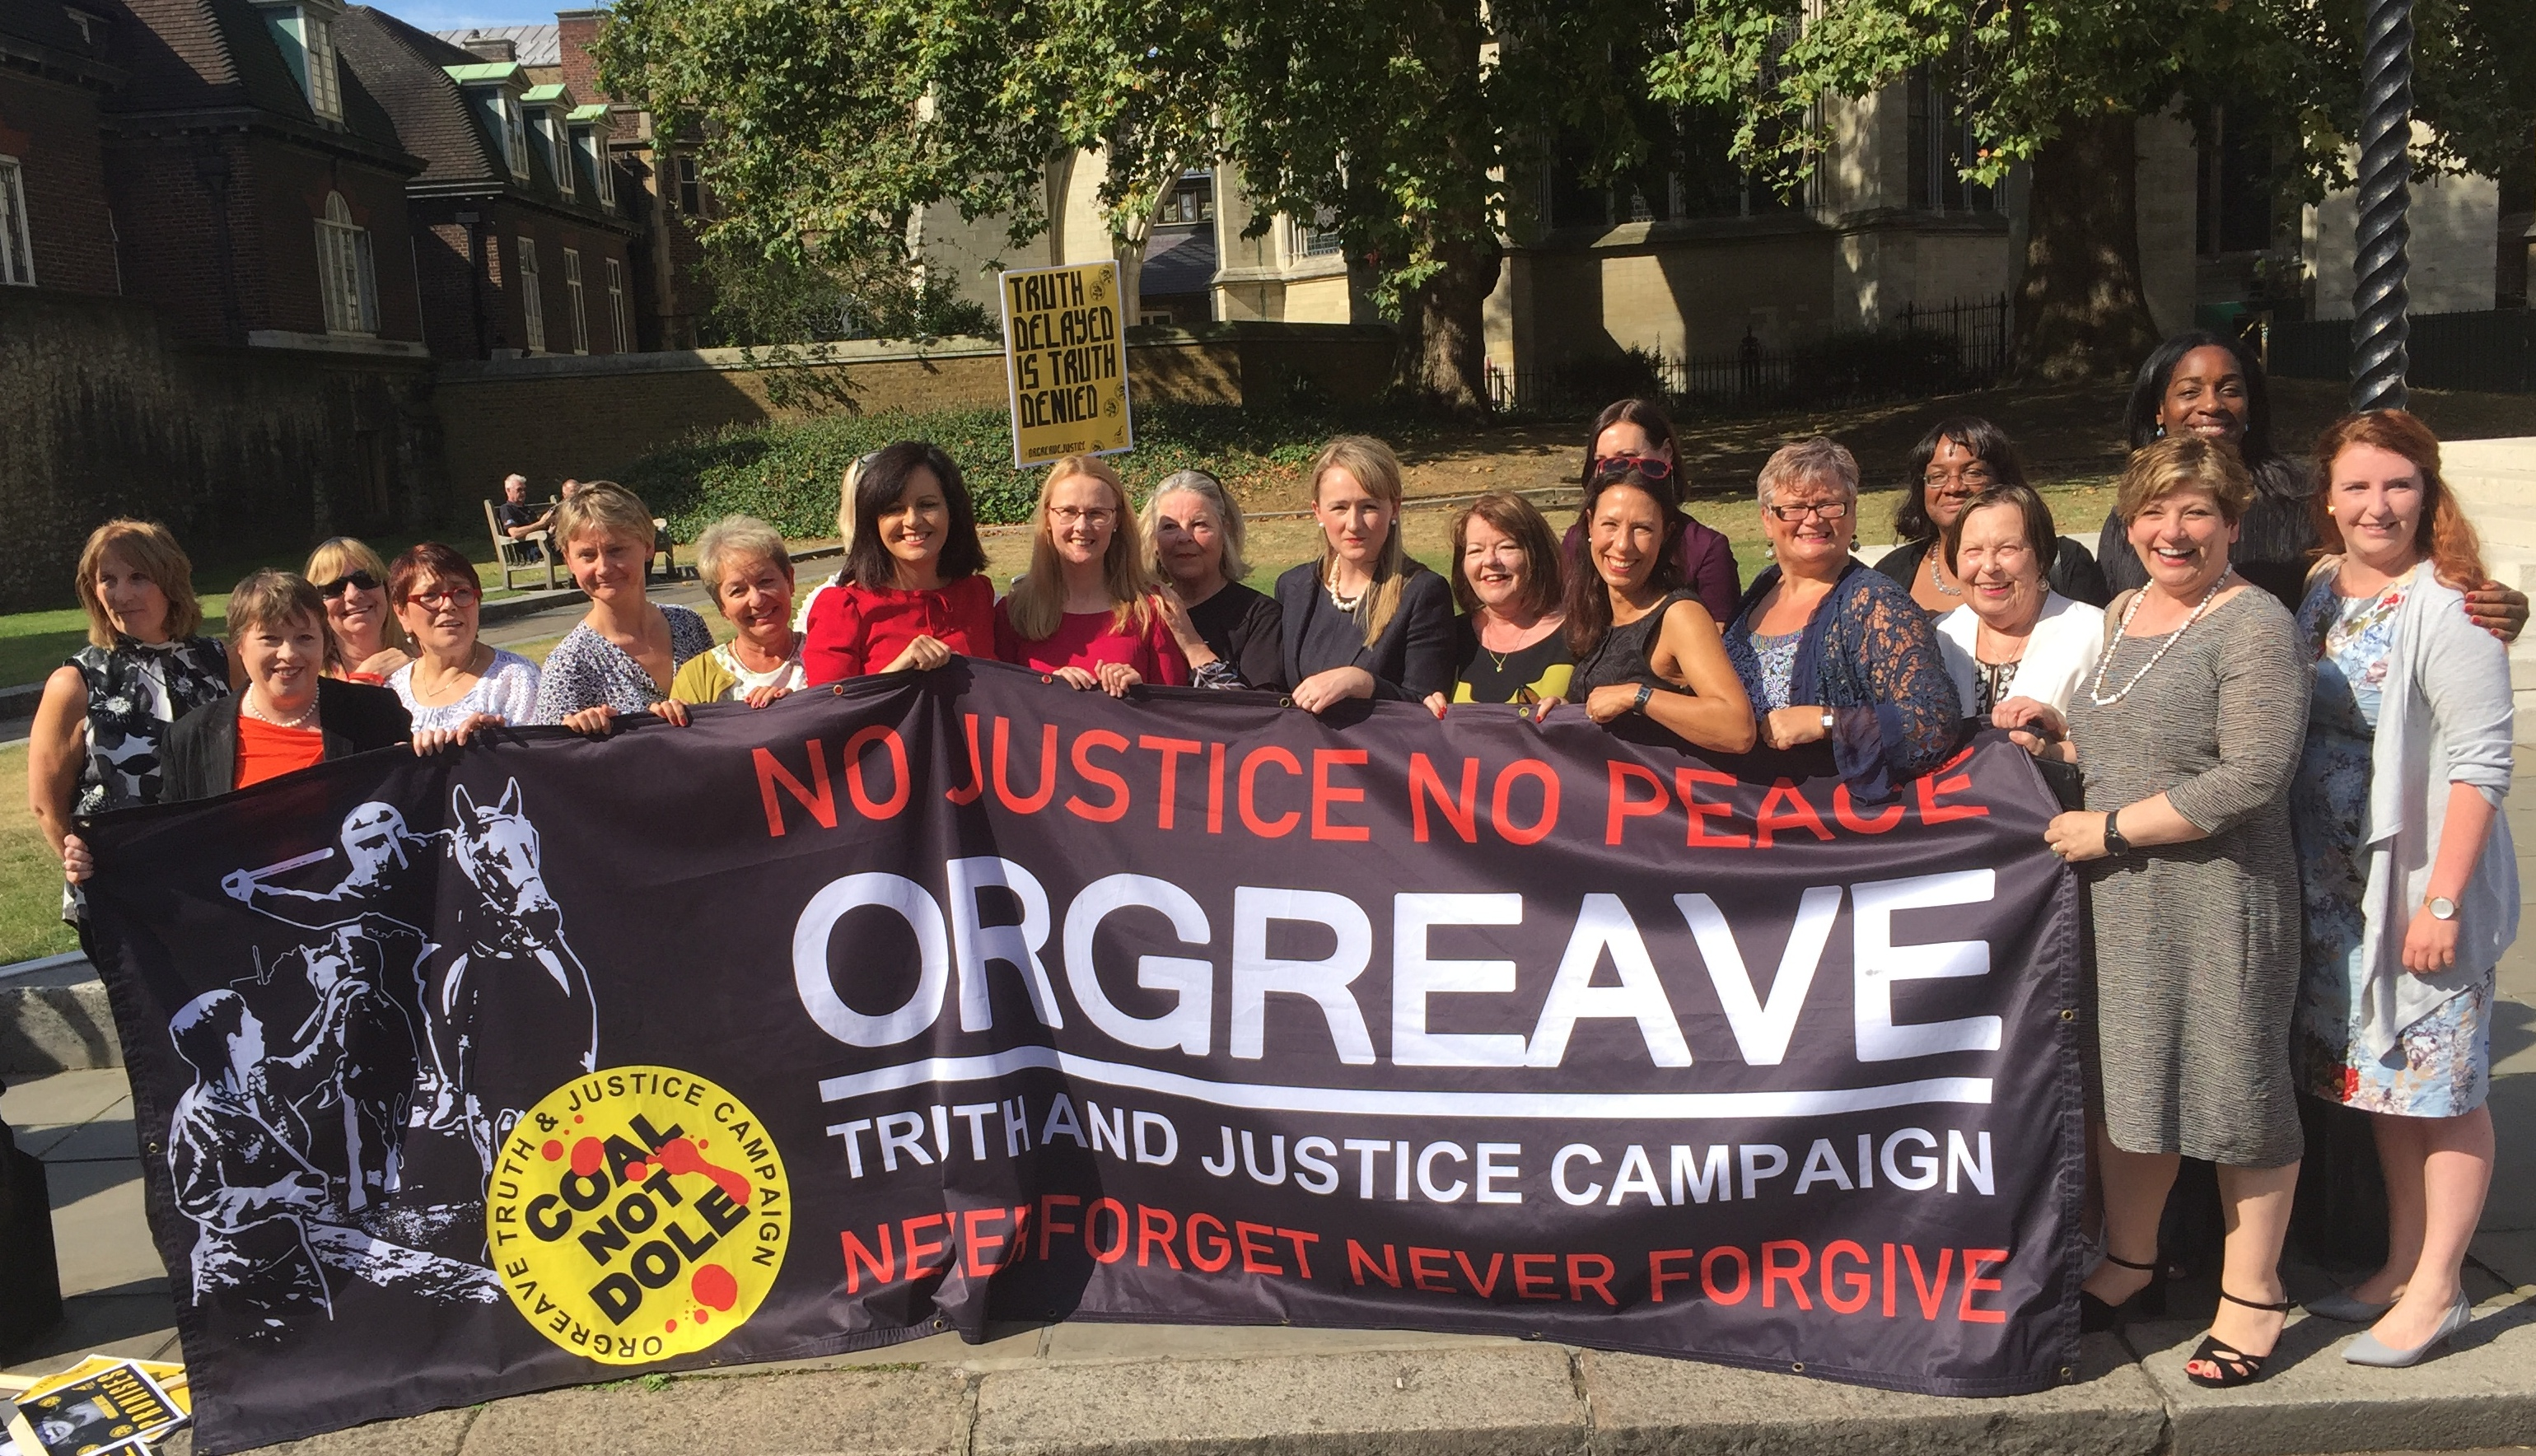 Orgreave_Labour_women0916.JPG